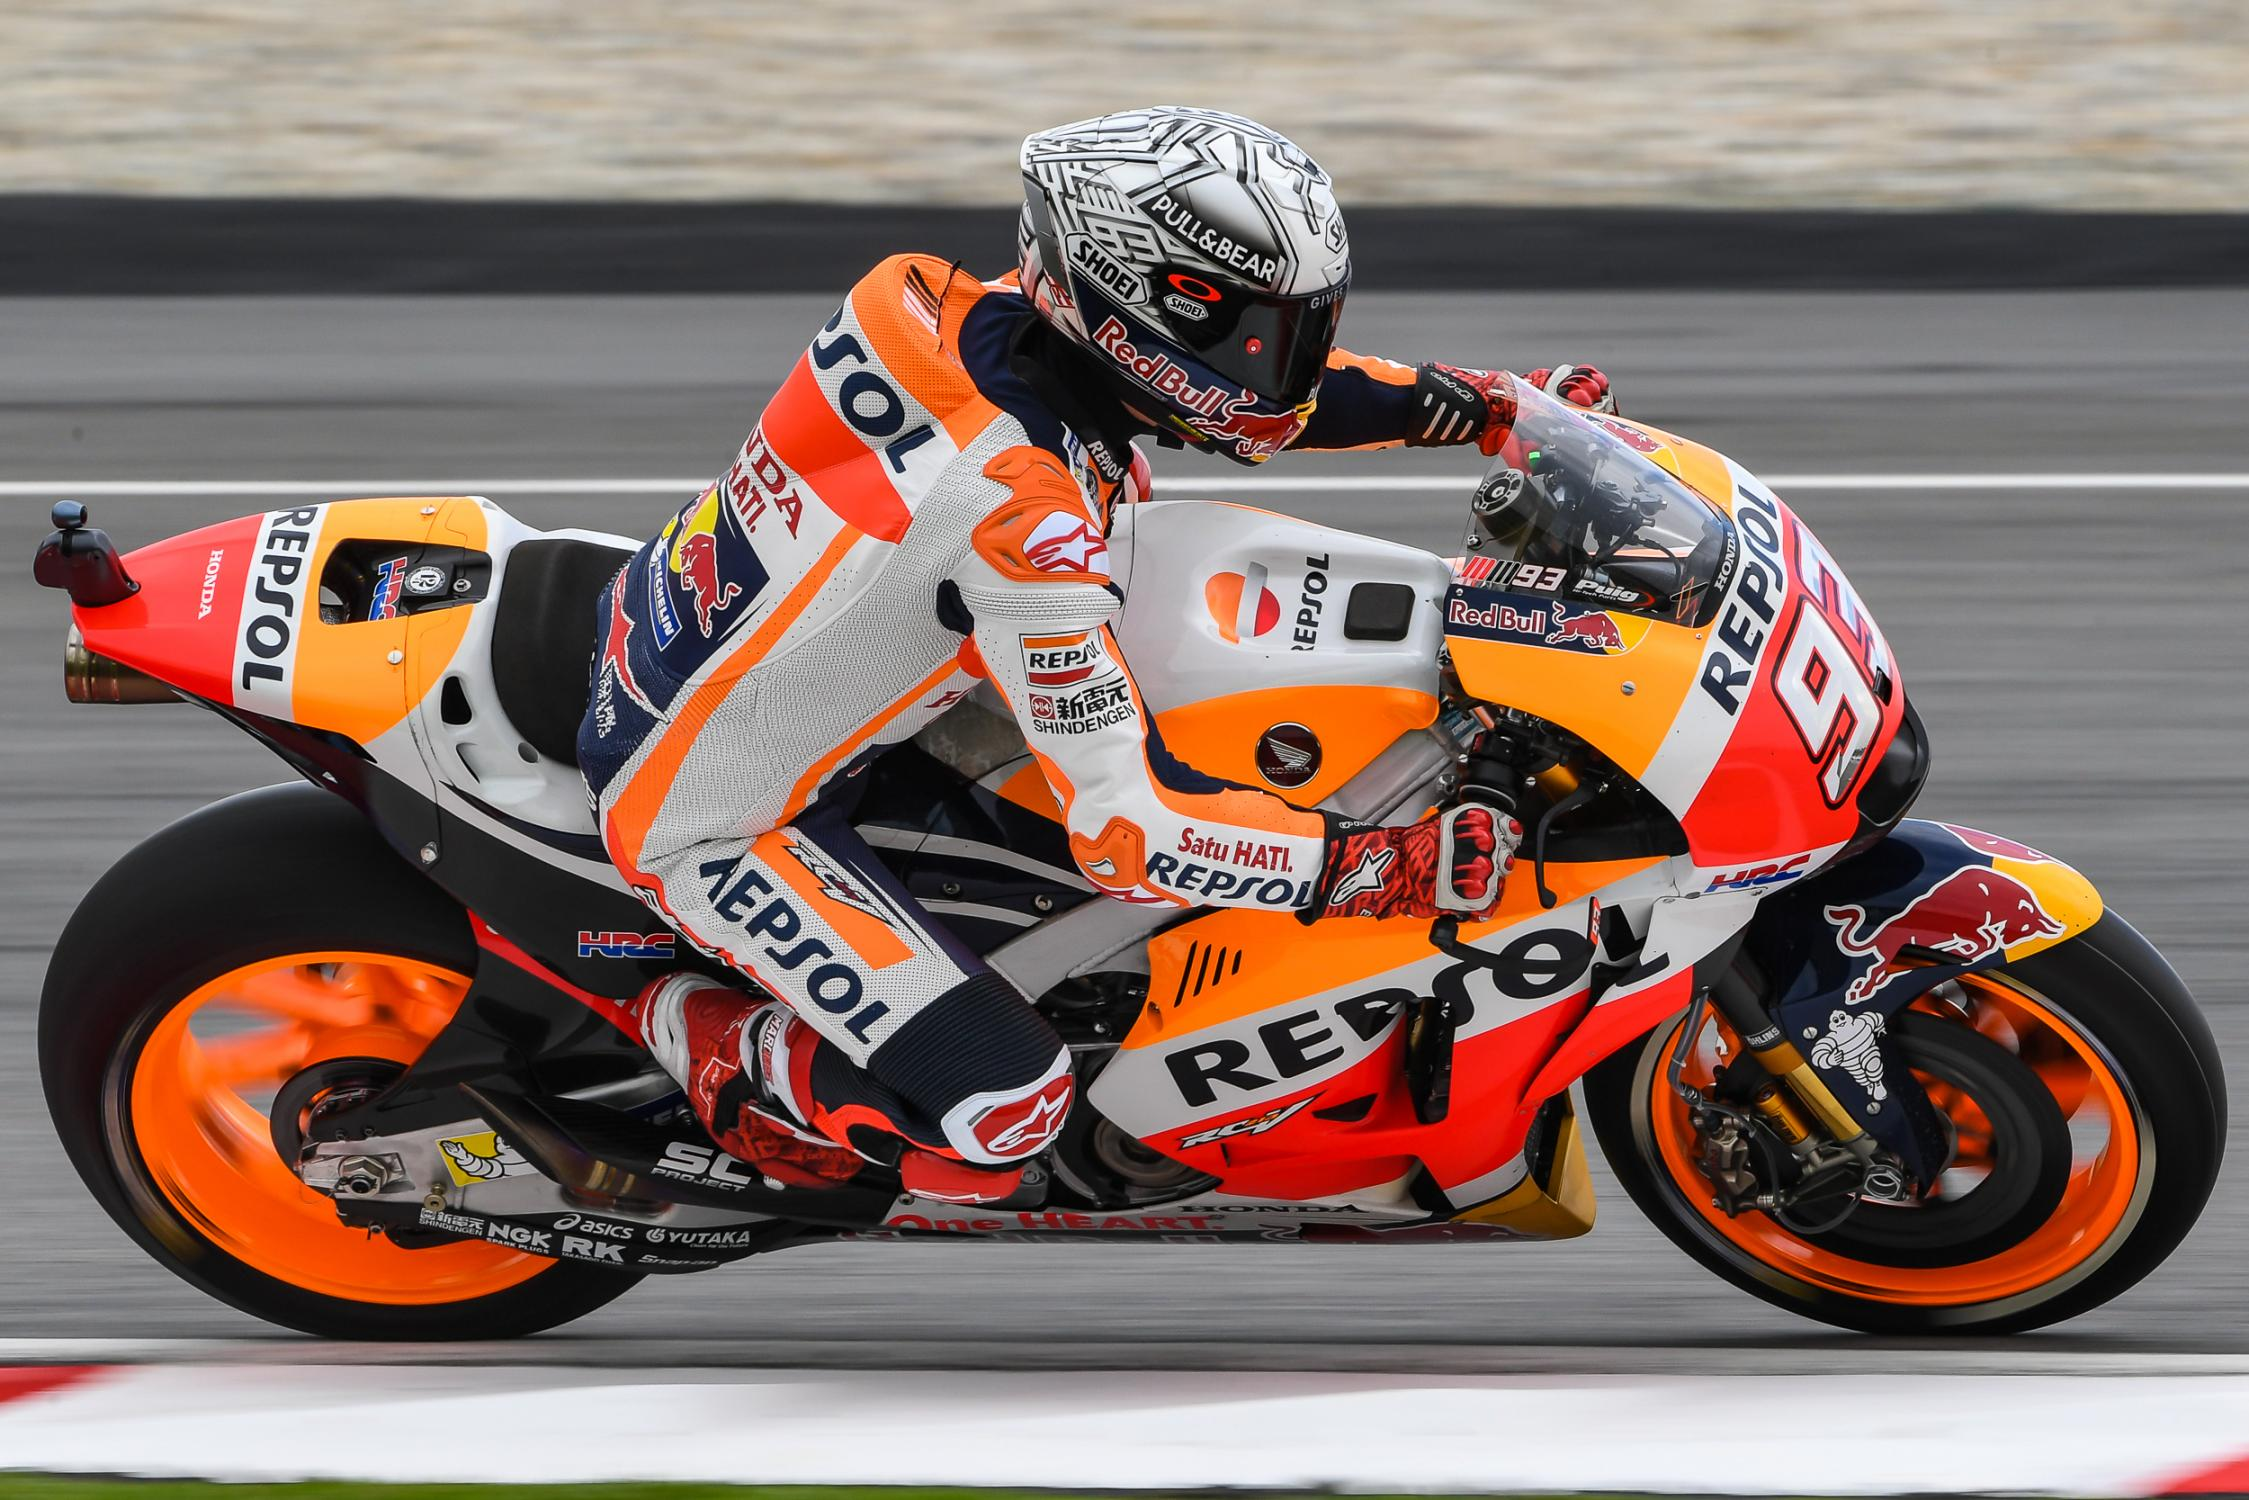 93-marc-marquez-espdsc_9025.gallery_full_top_fullscreen.jpg